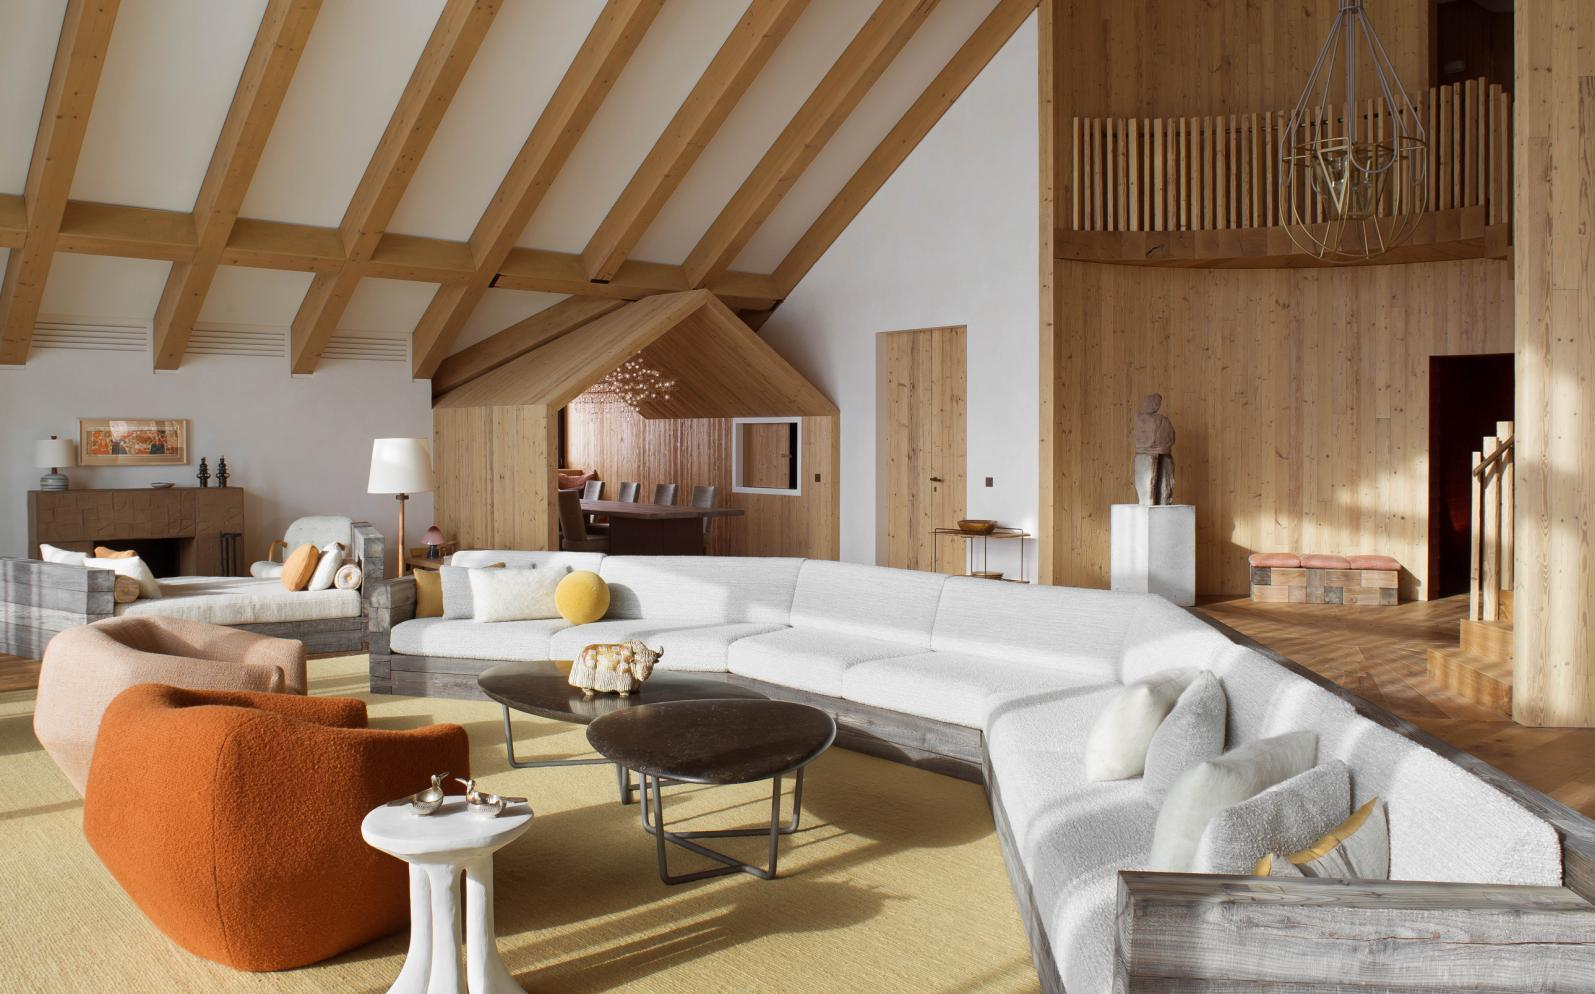 Where to Stay in Méribel: Hotel Le Coucou - opening December 2019.